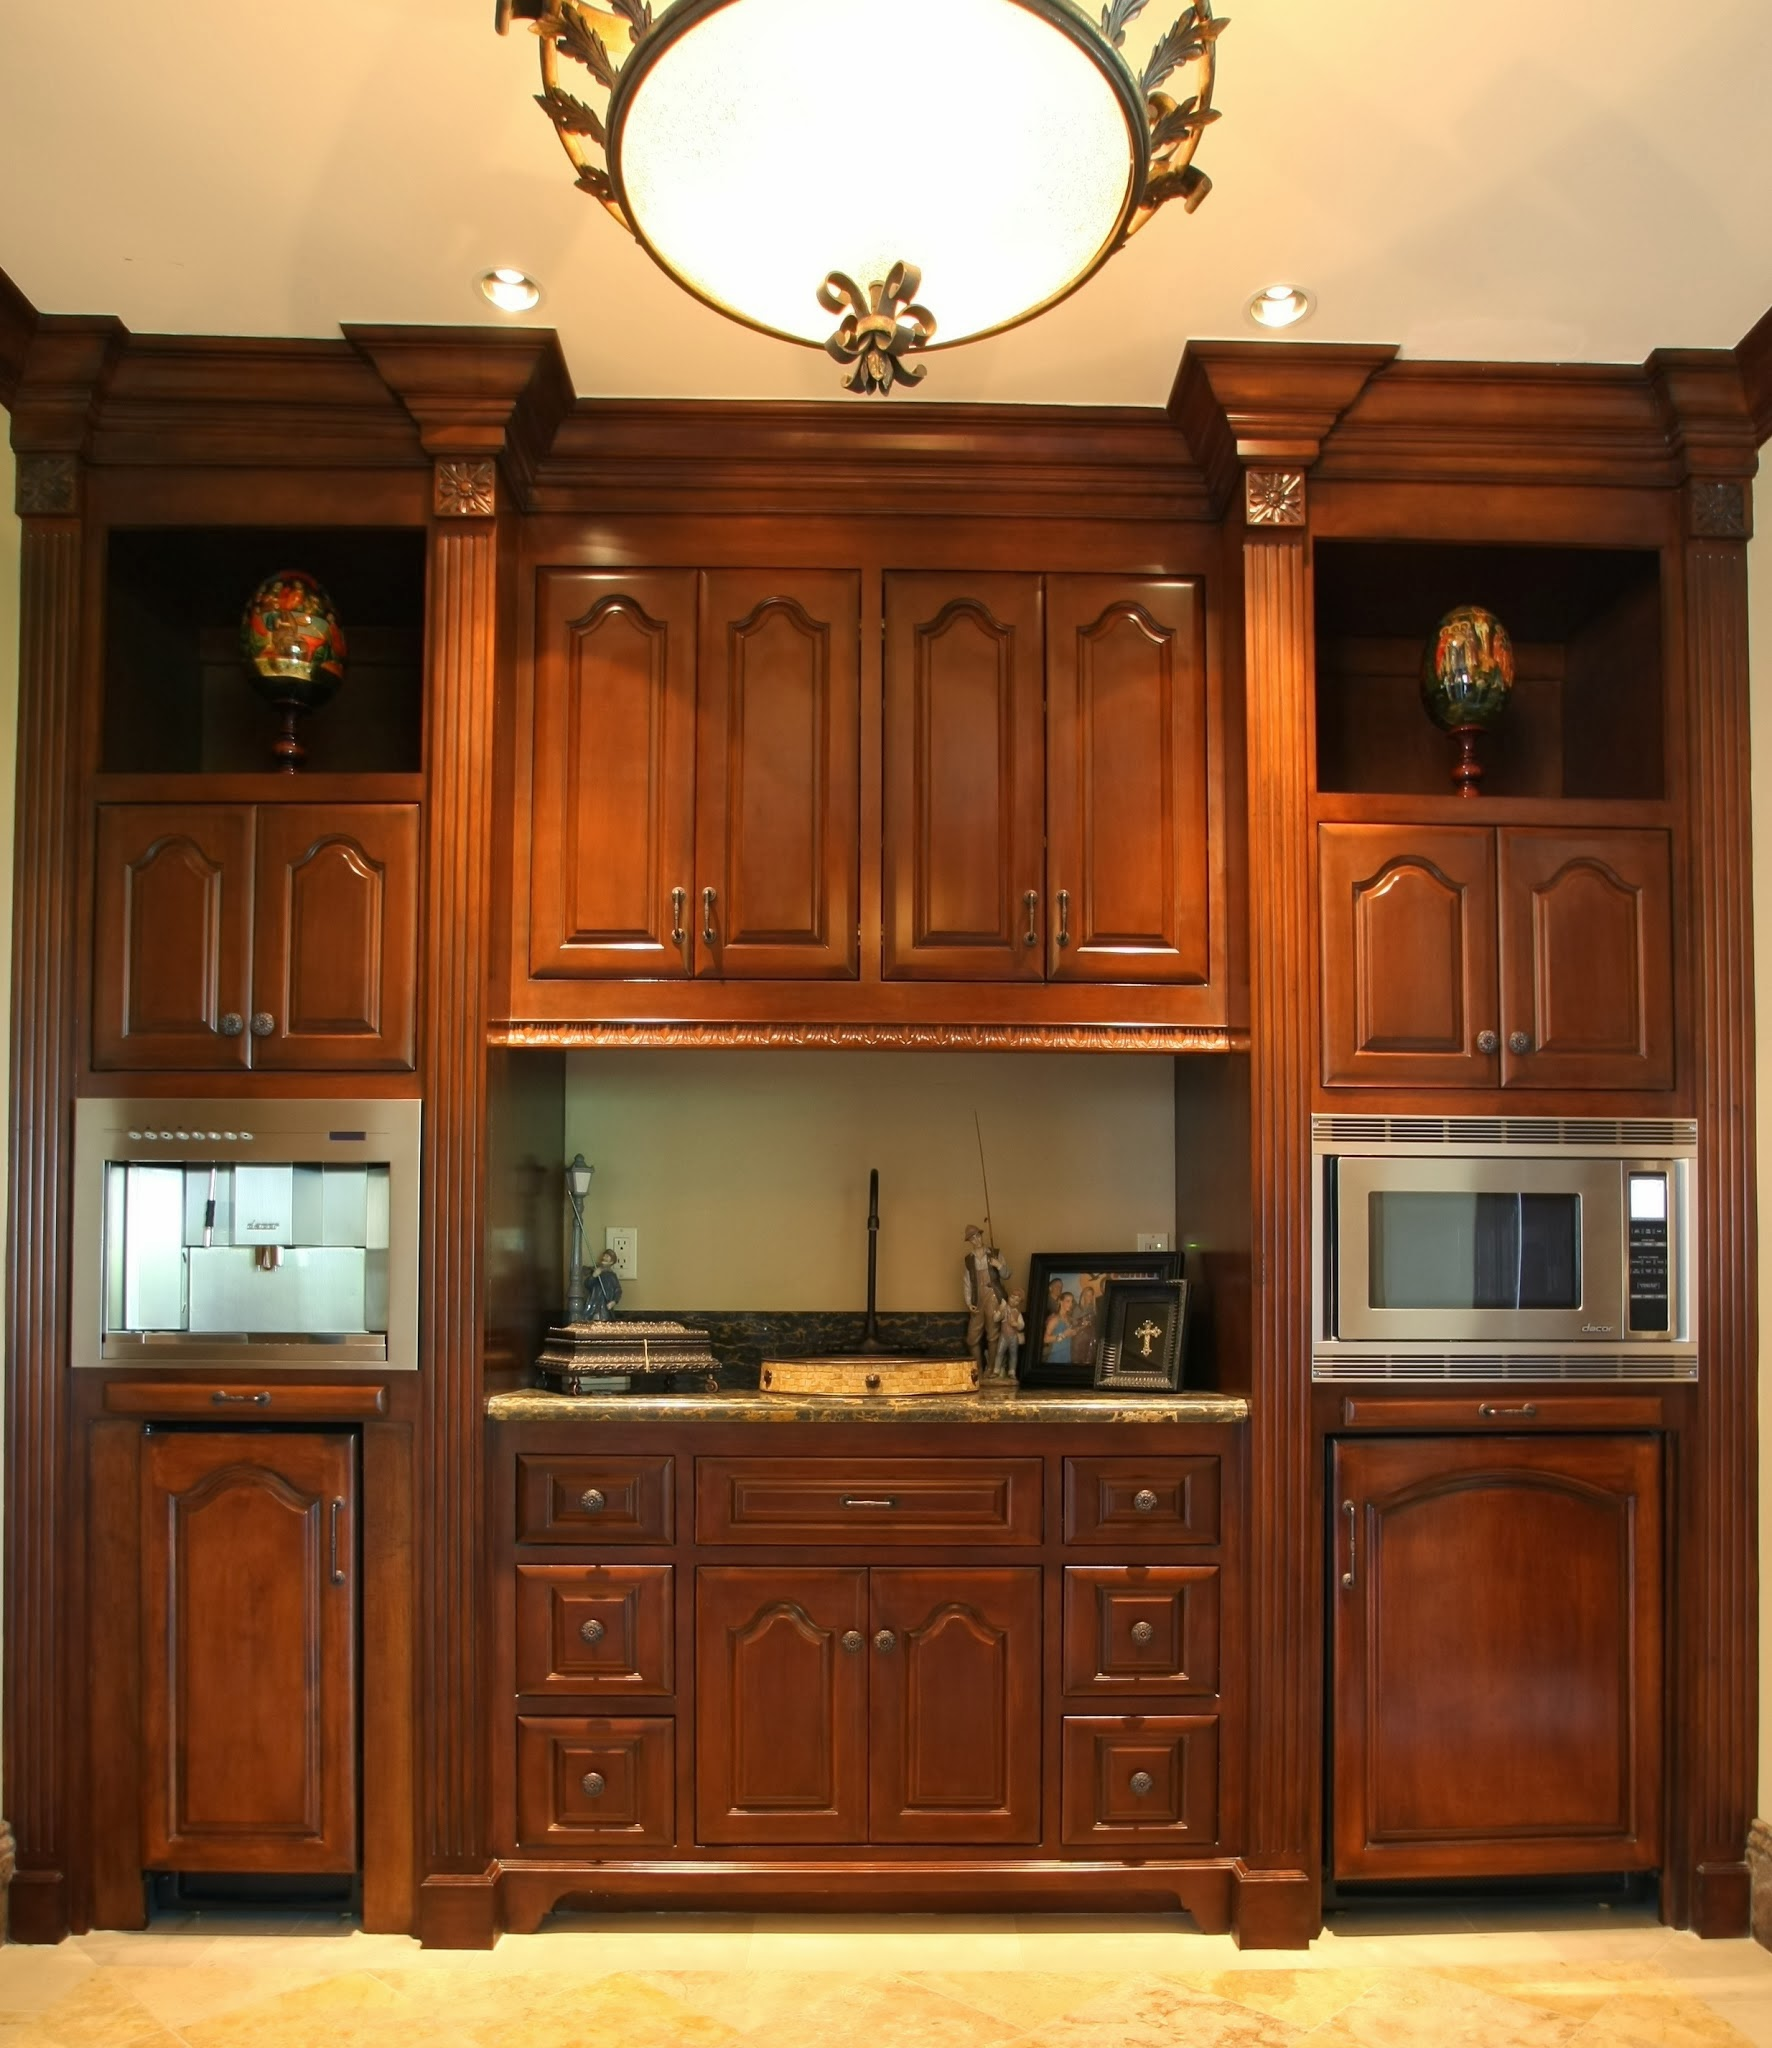 cabinetry3 (2).jpg